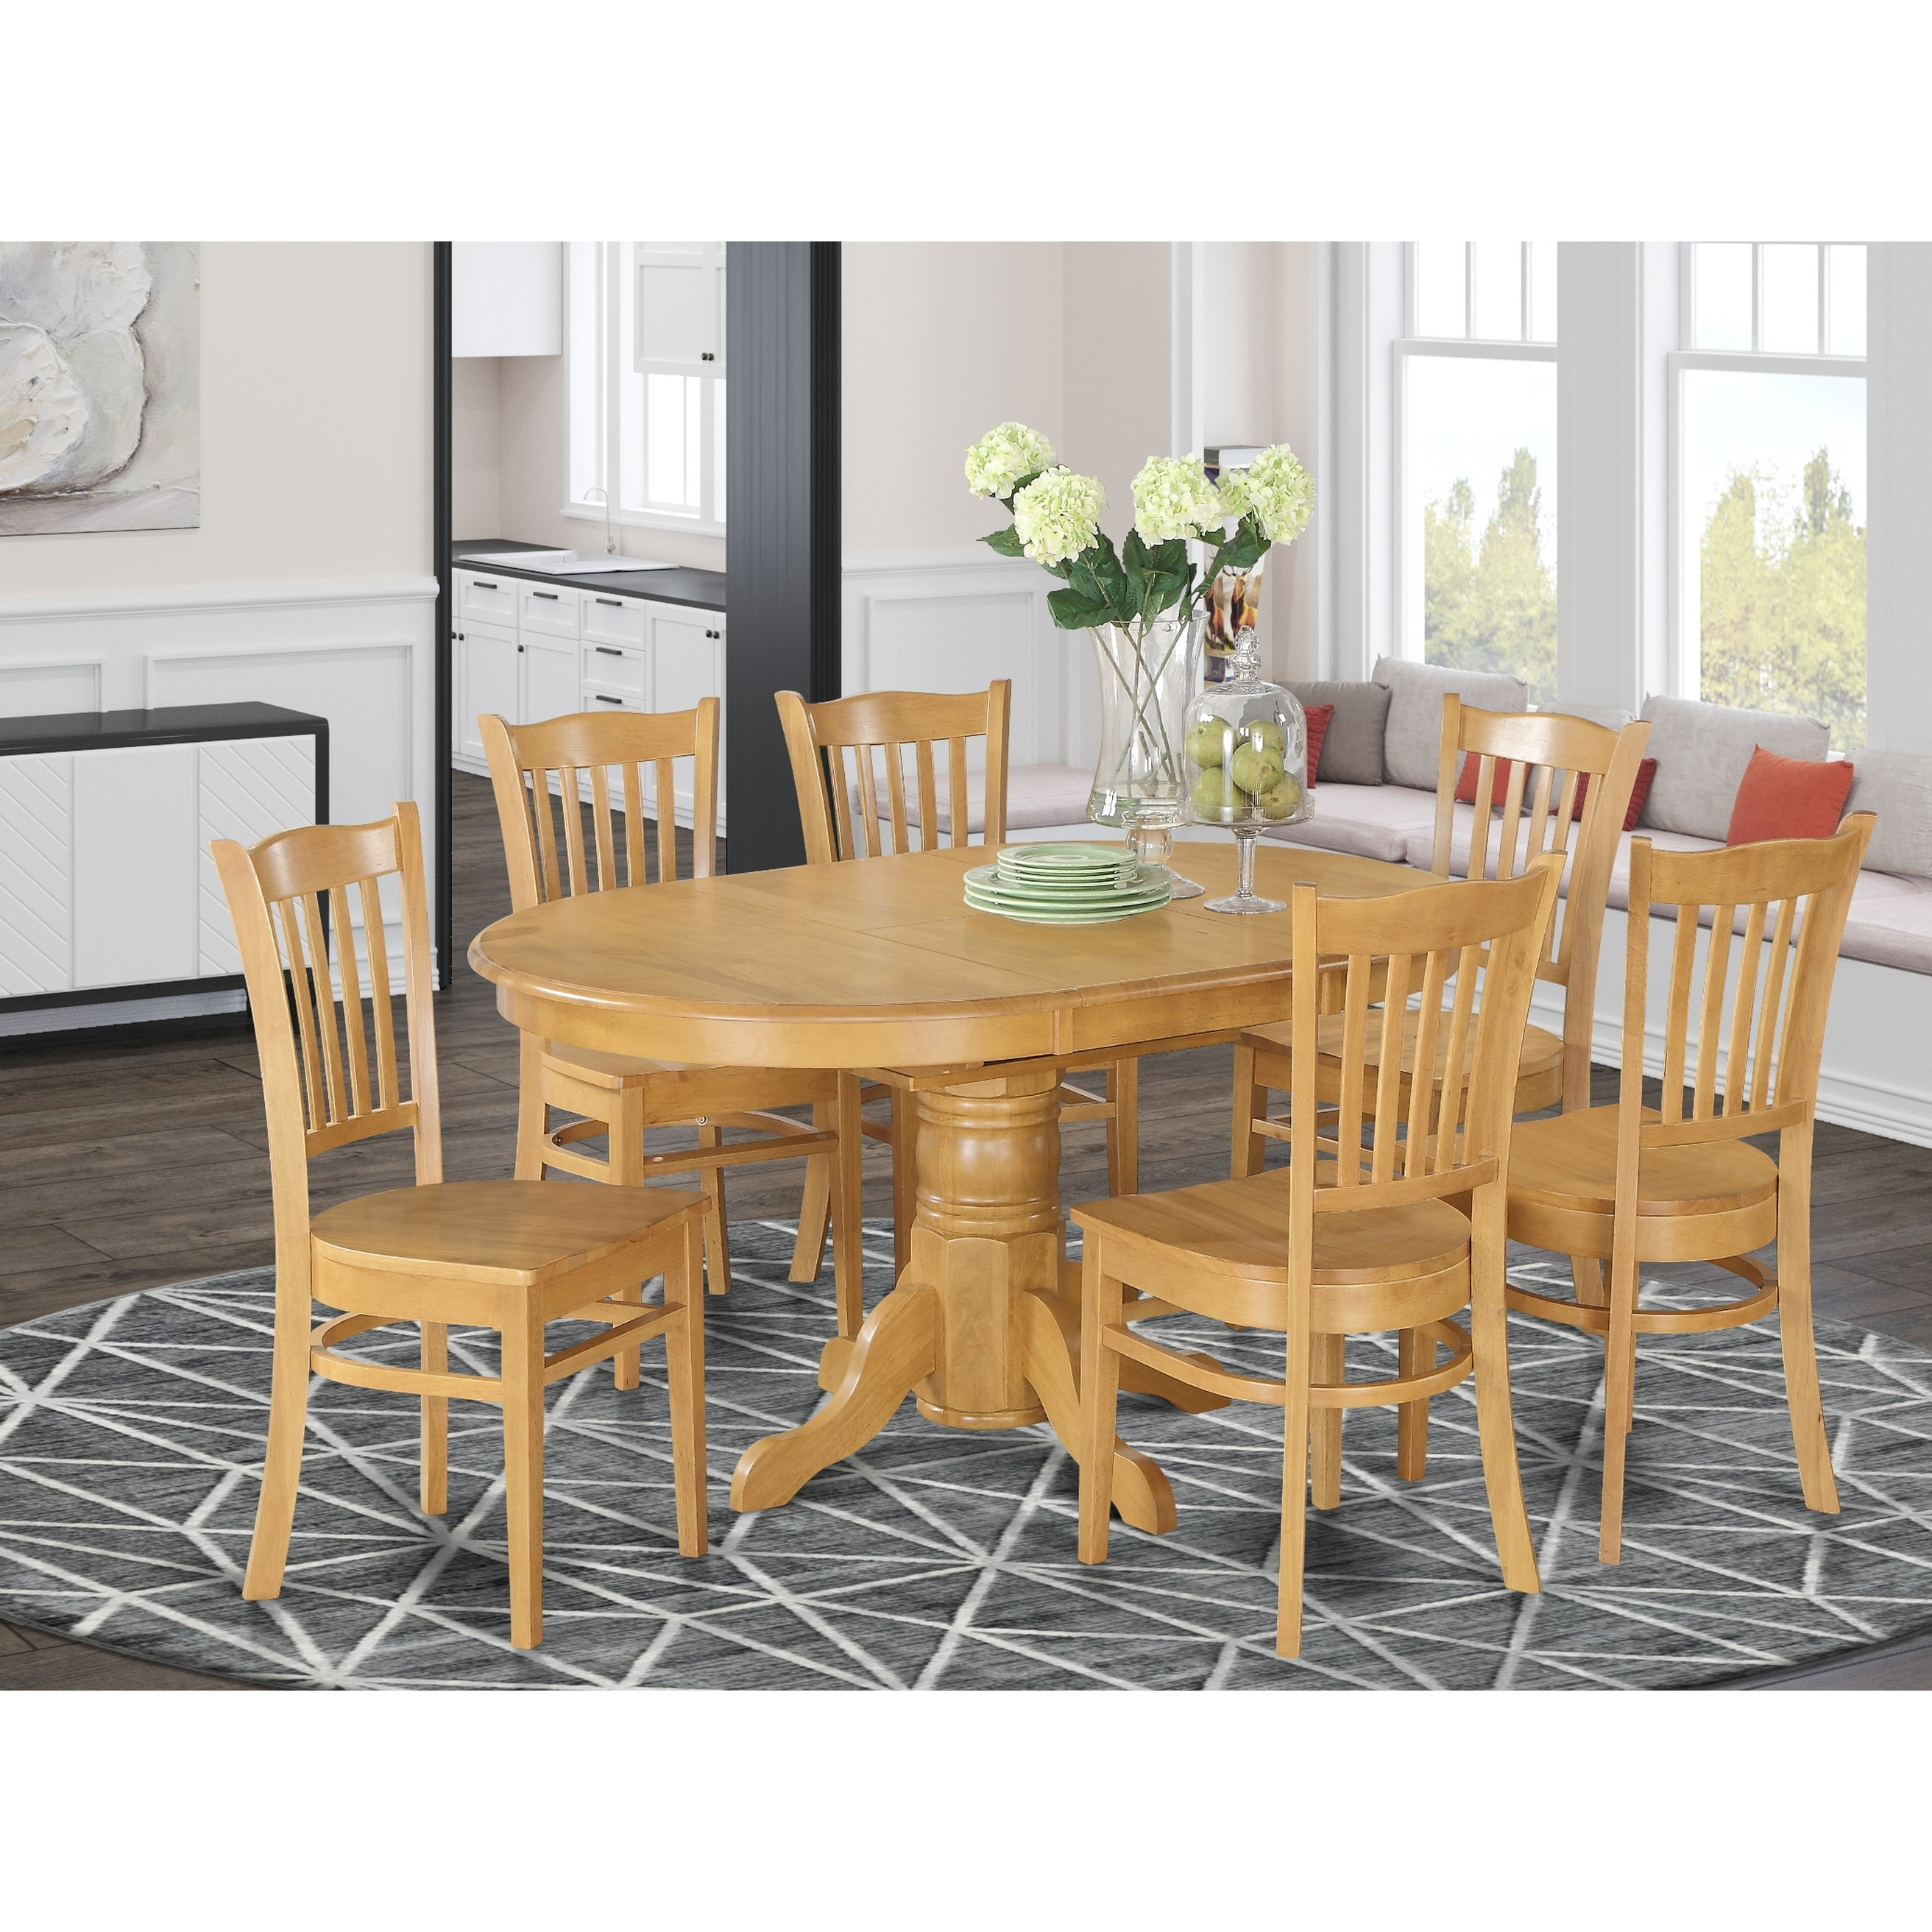 Shop 7 Piece Formal Oval Dinette Table With Leaf And 6 Dining Chairs Oak Overstock 10296393